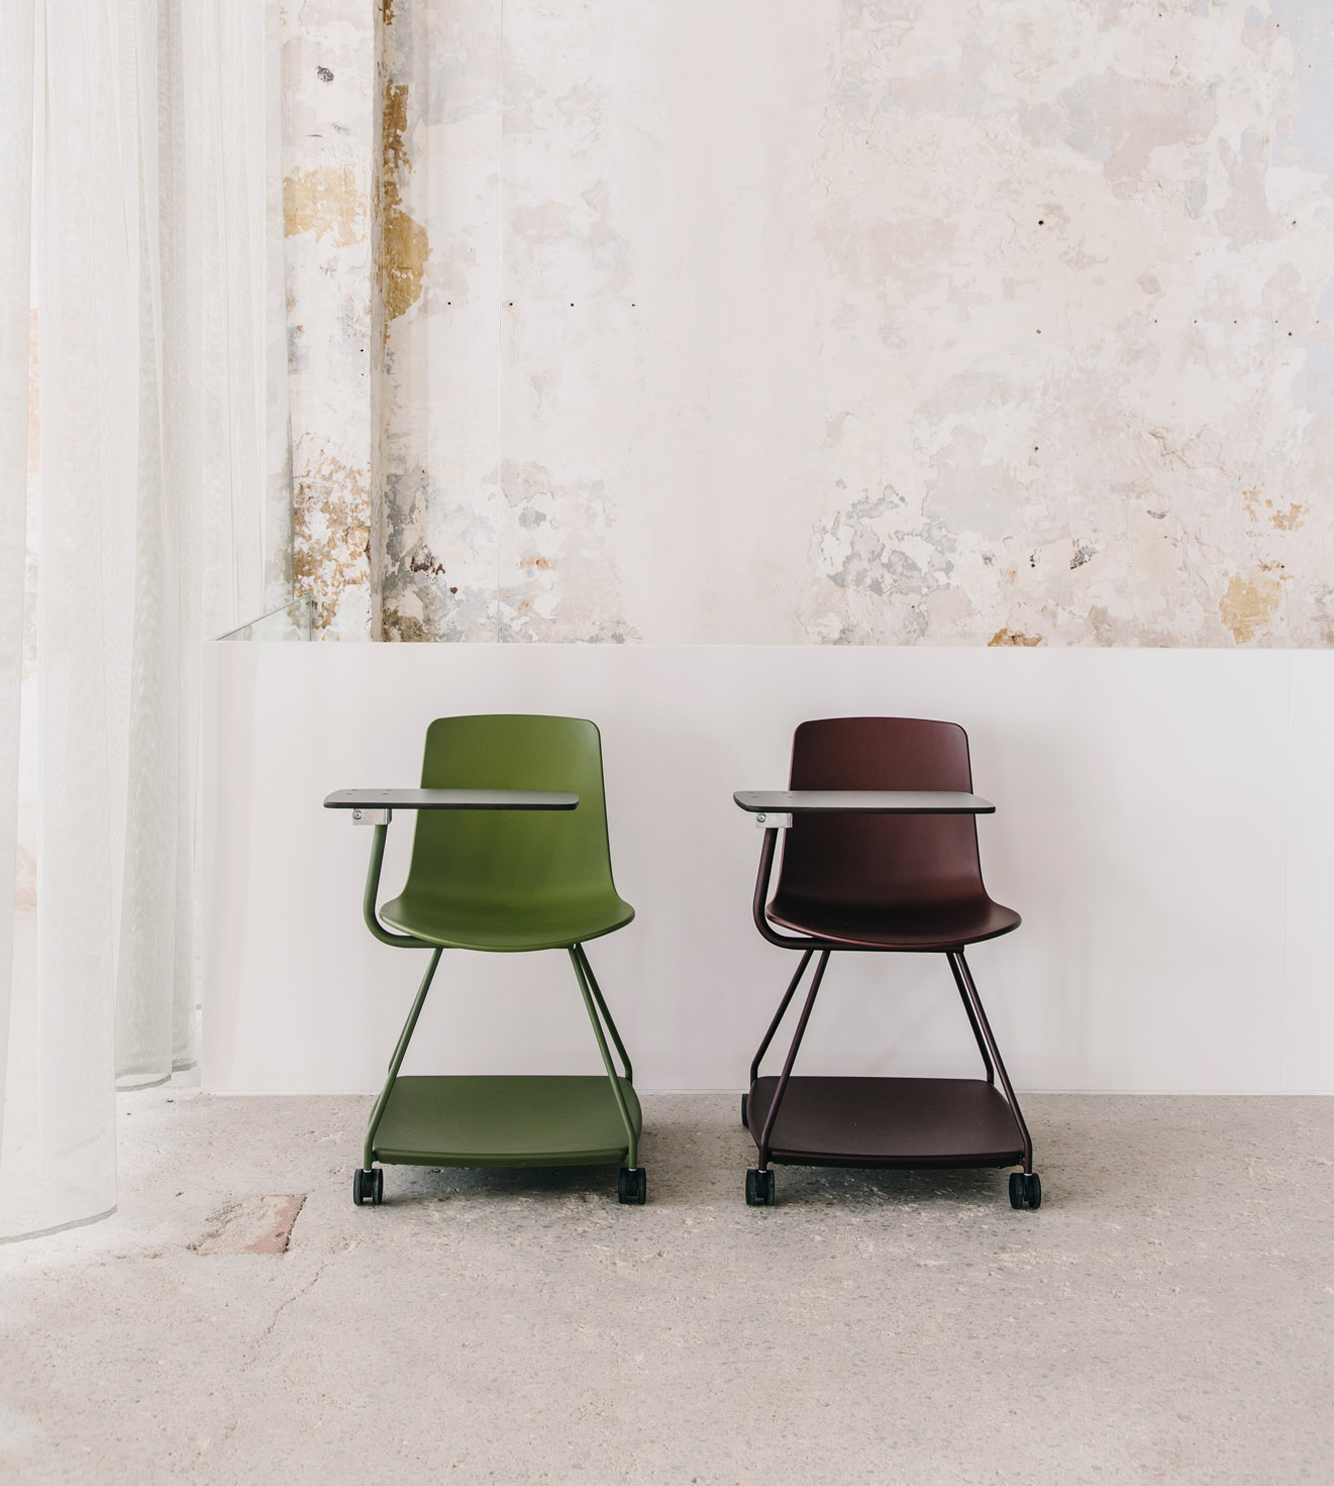 Tray chair, Enea's new seat for educational spaces